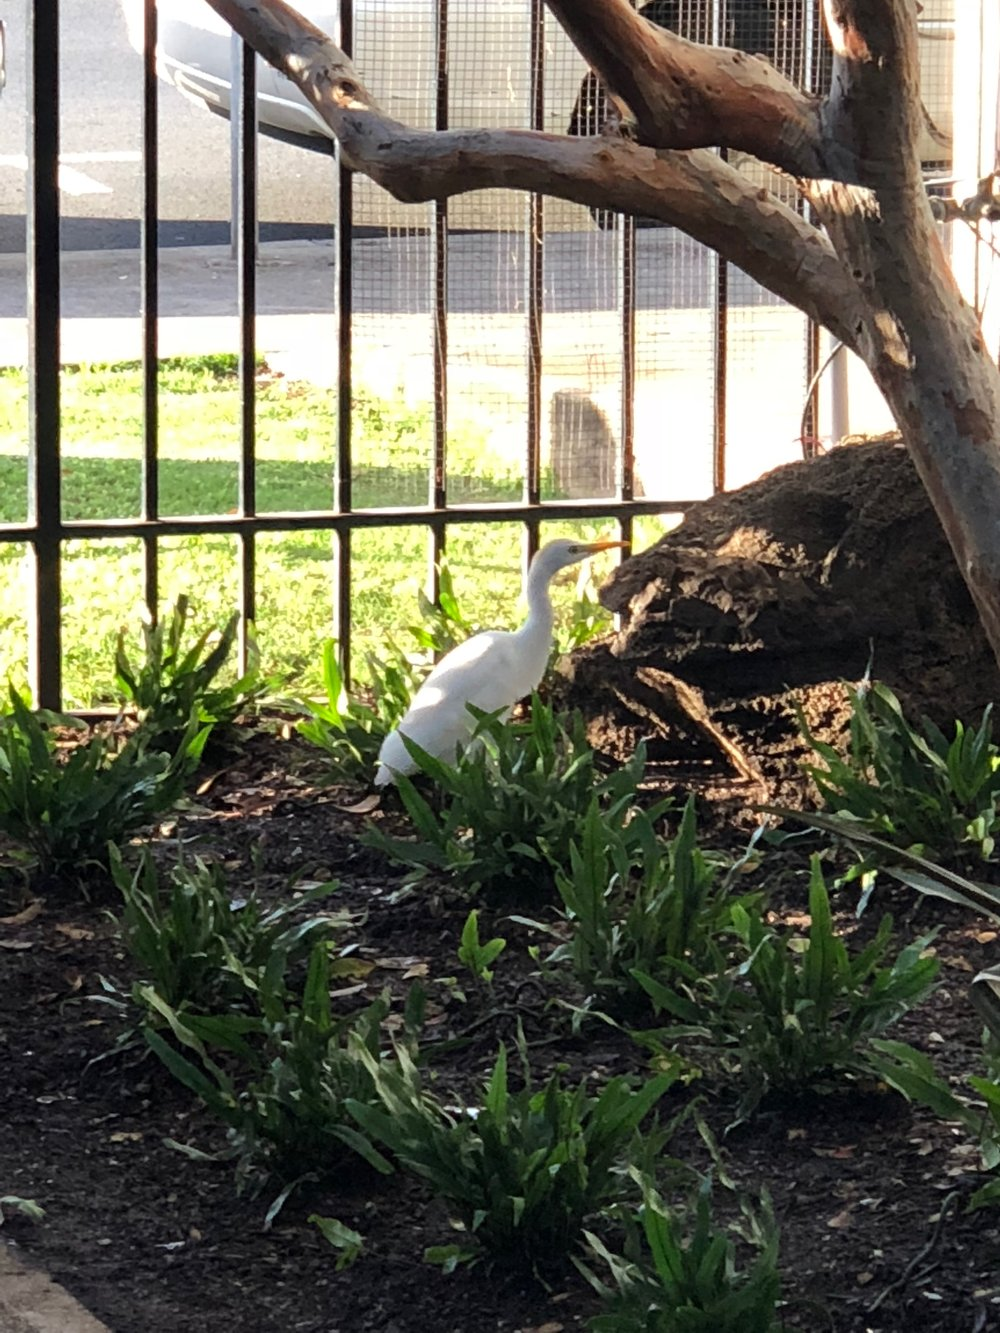 An egret enjoys the new plantings by the lanai.